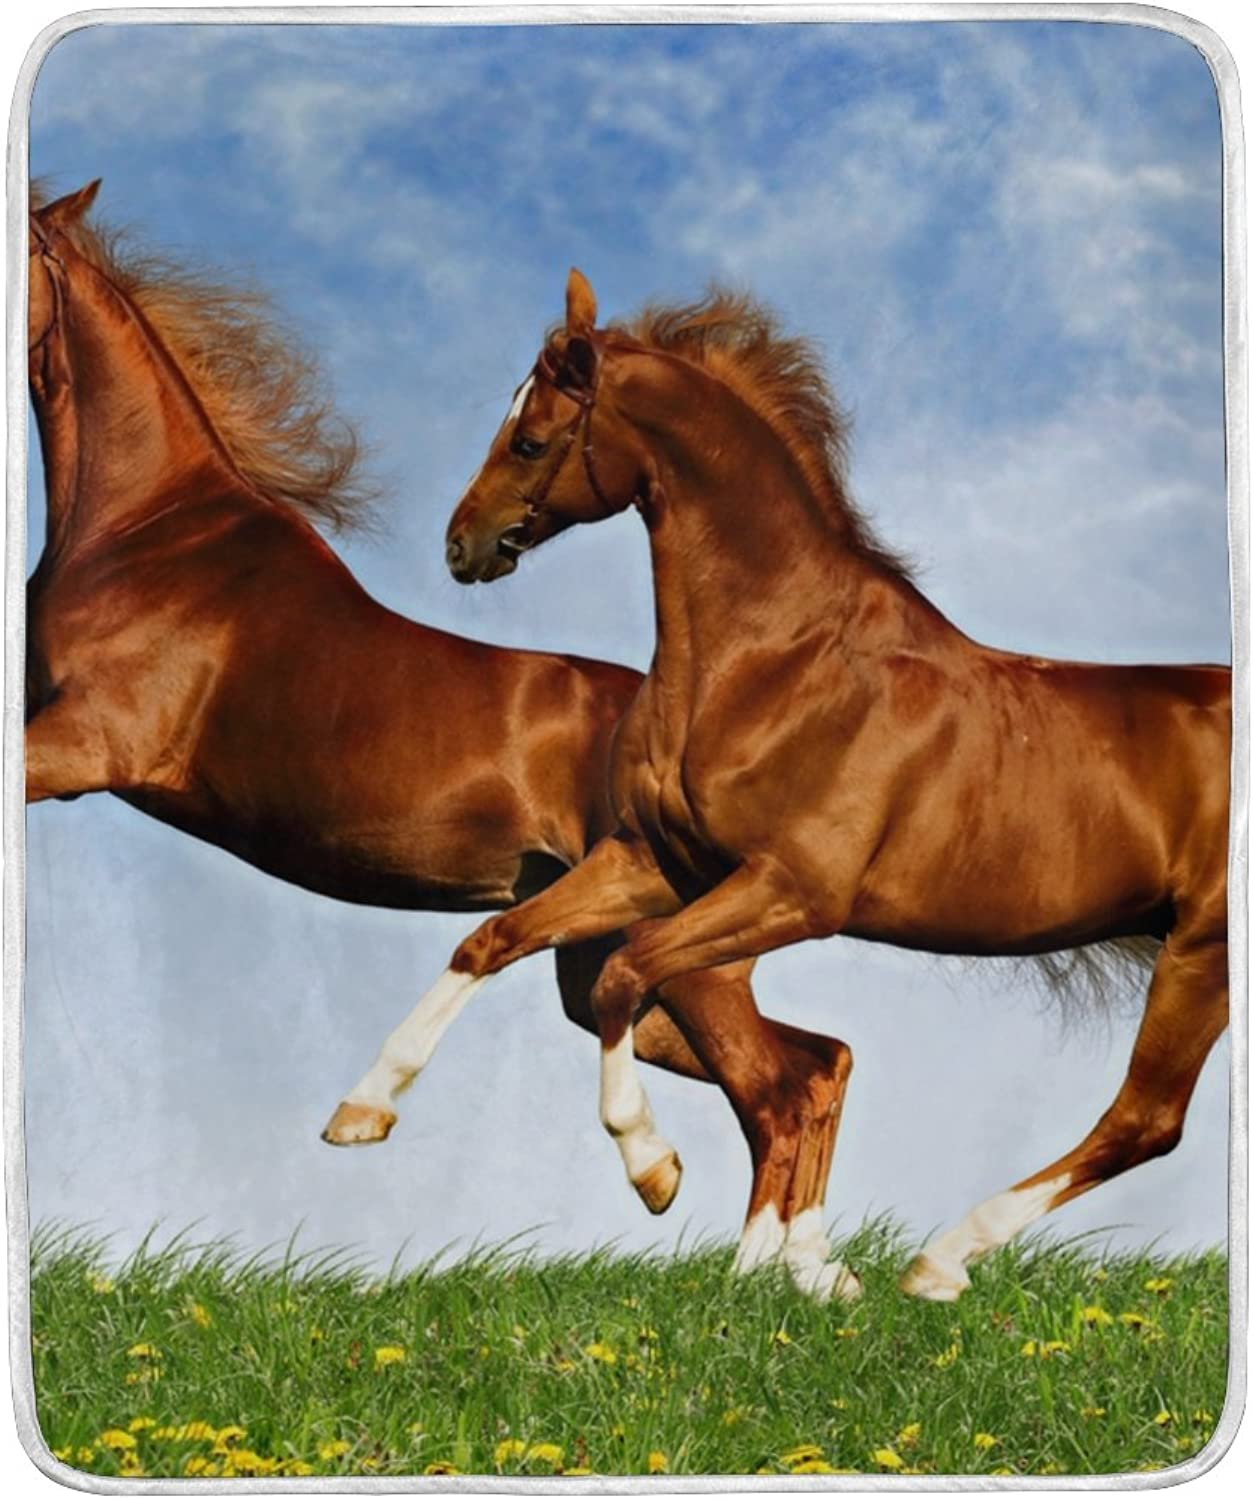 ALIREA Two Horses Frolic On The Plain Super Soft Warm Blanket Lightweight Throw Blankets for Bed Couch Sofa Travelling Camping 60 x 50 Inch for Kids Boys Girls